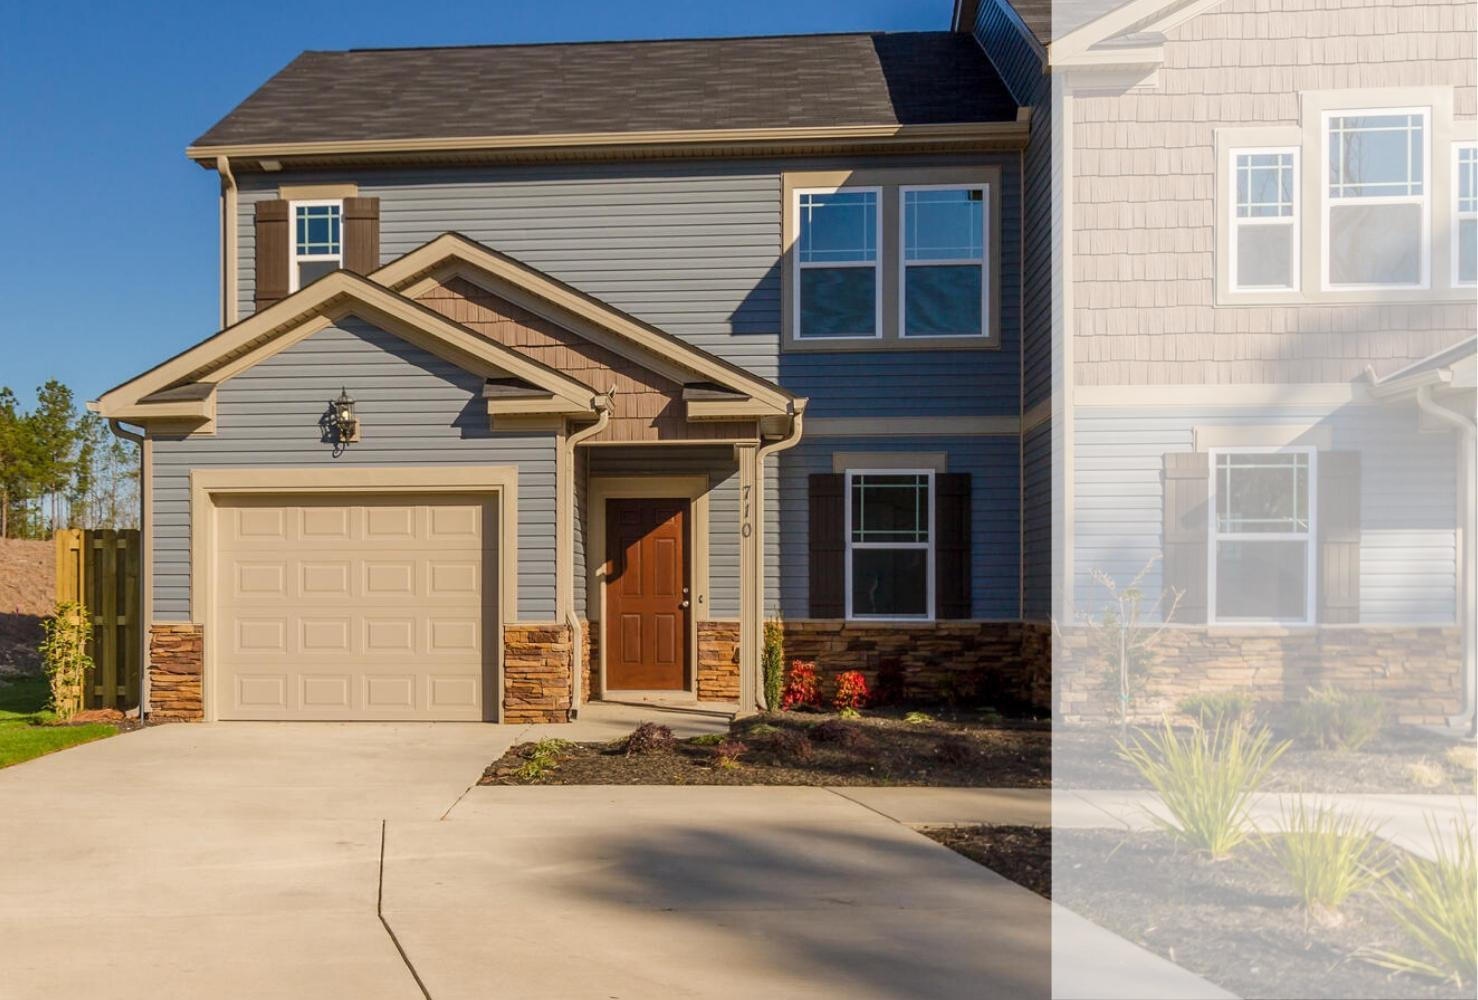 Exterior featured in the Brighton Woods 3 Bedroom Townhome By Ivey Residential in Augusta, GA